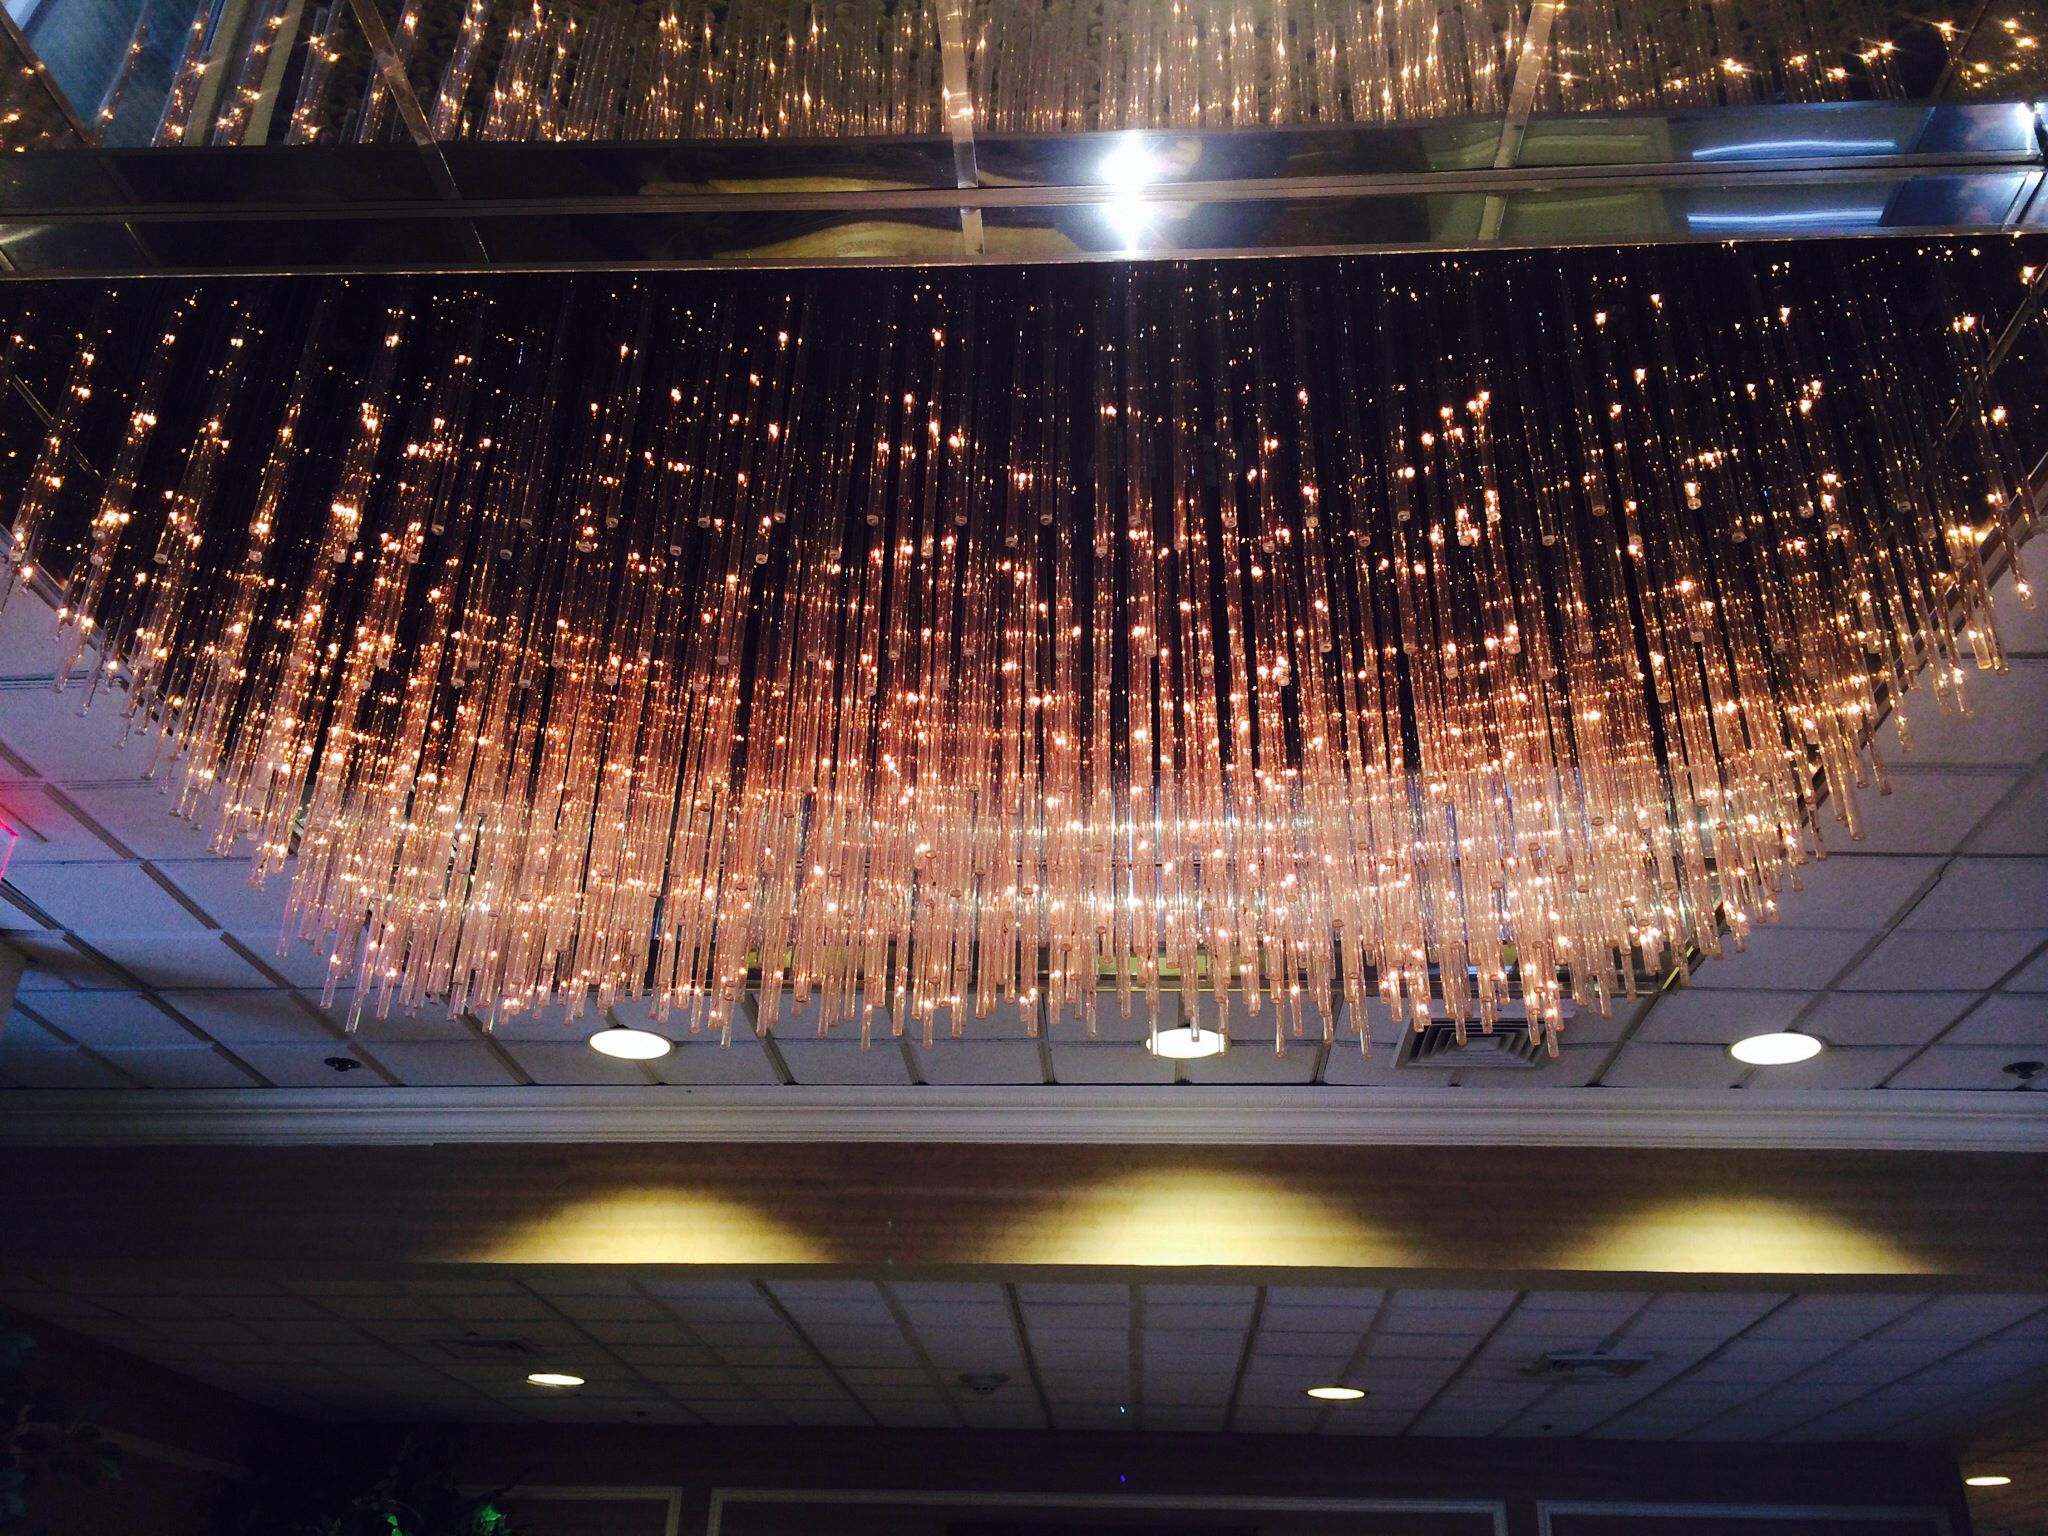 Chandelier from a hotel in nanuet ny very pretty love